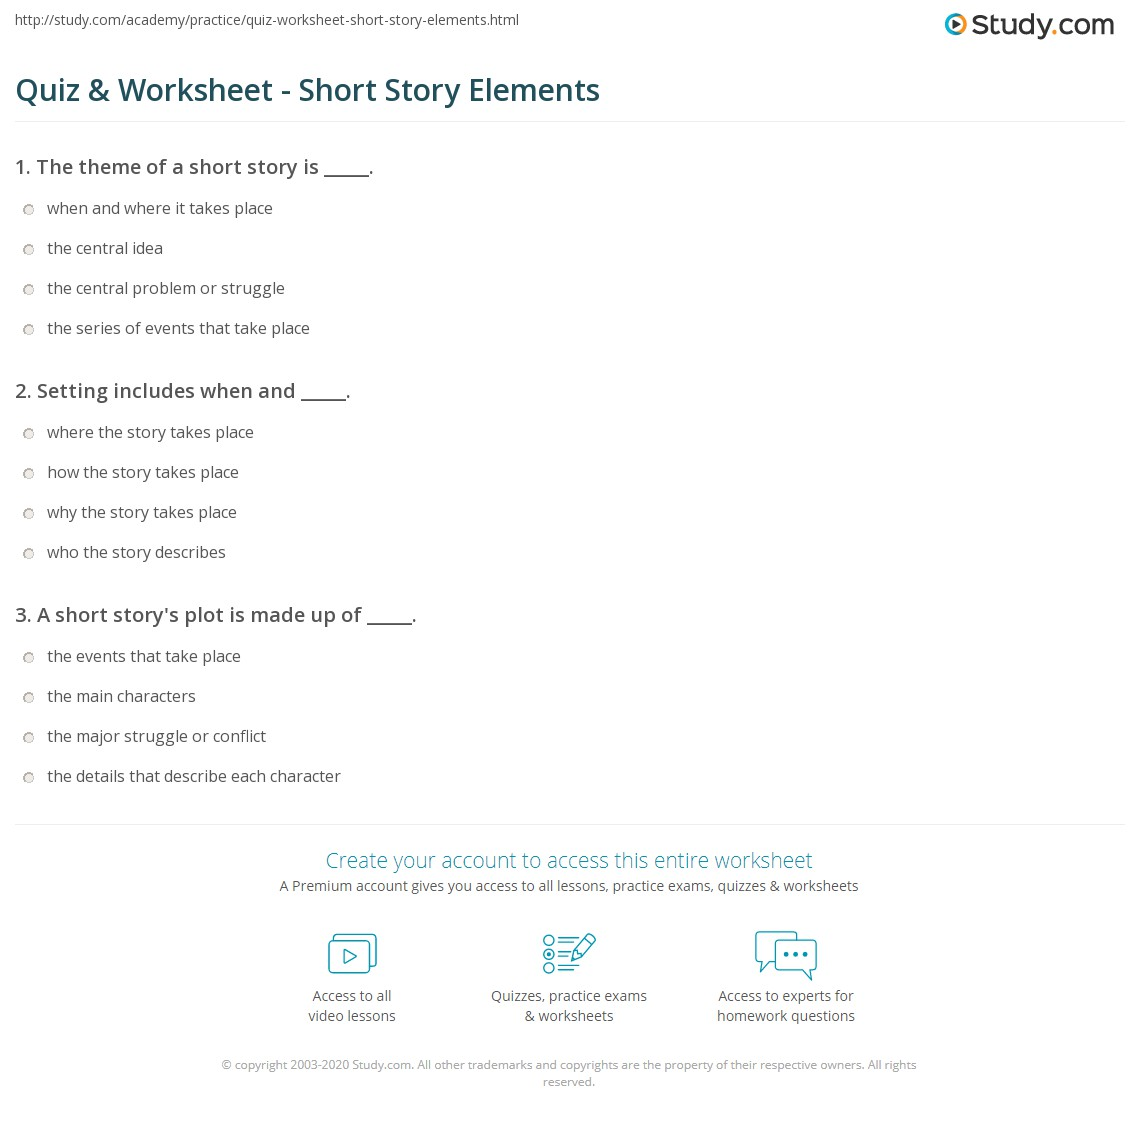 Elements Of A Good Short Story Six Elements Of Great Short Stories 03 02